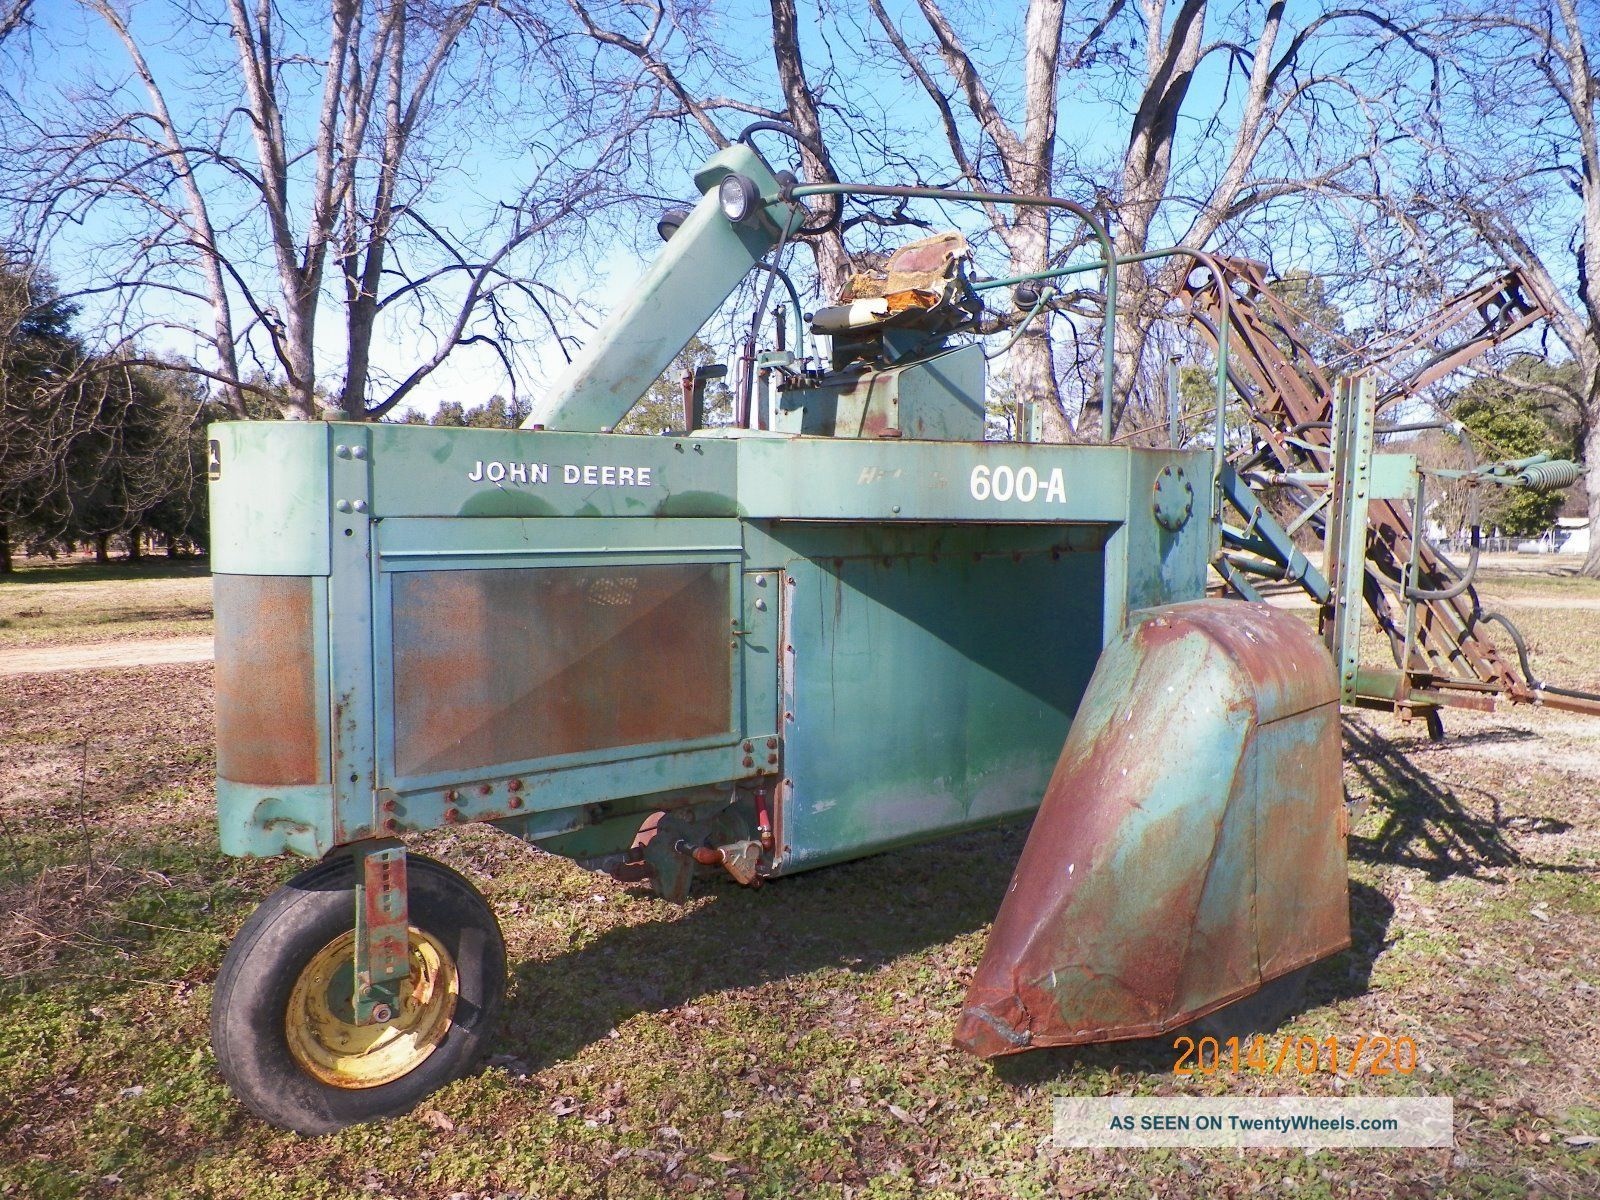 Old John sprayer conversion kit? - John Deere Forum - Yesterday's Tractors